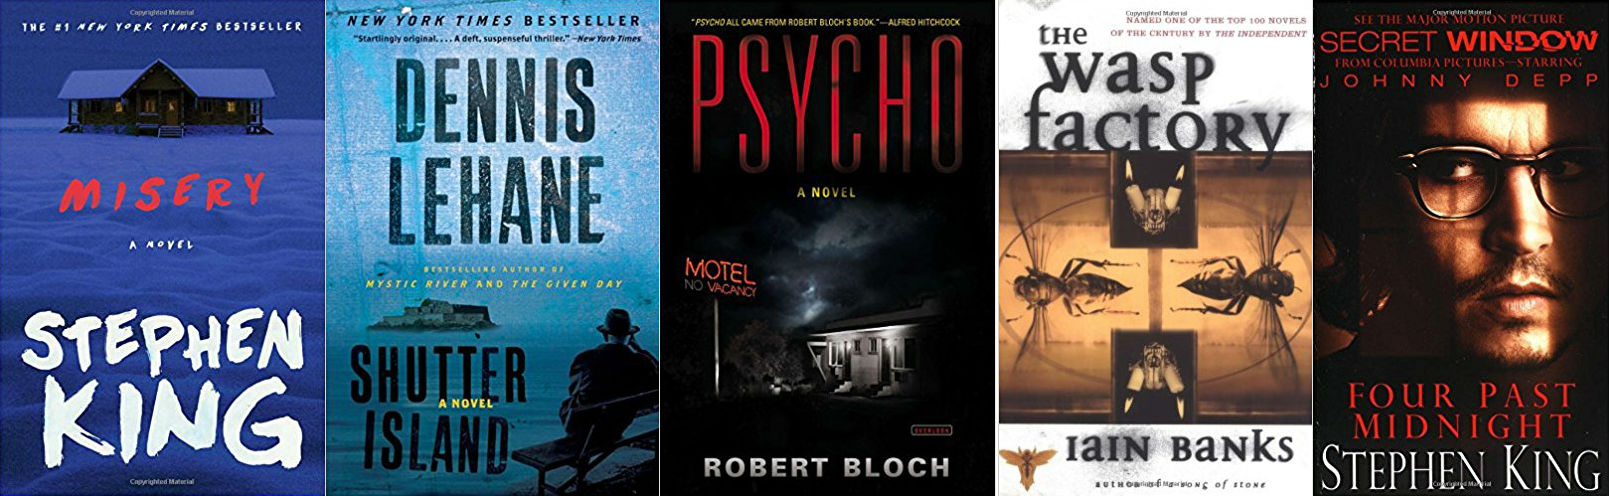 Psychological Thriller Books Archives - This is Writing